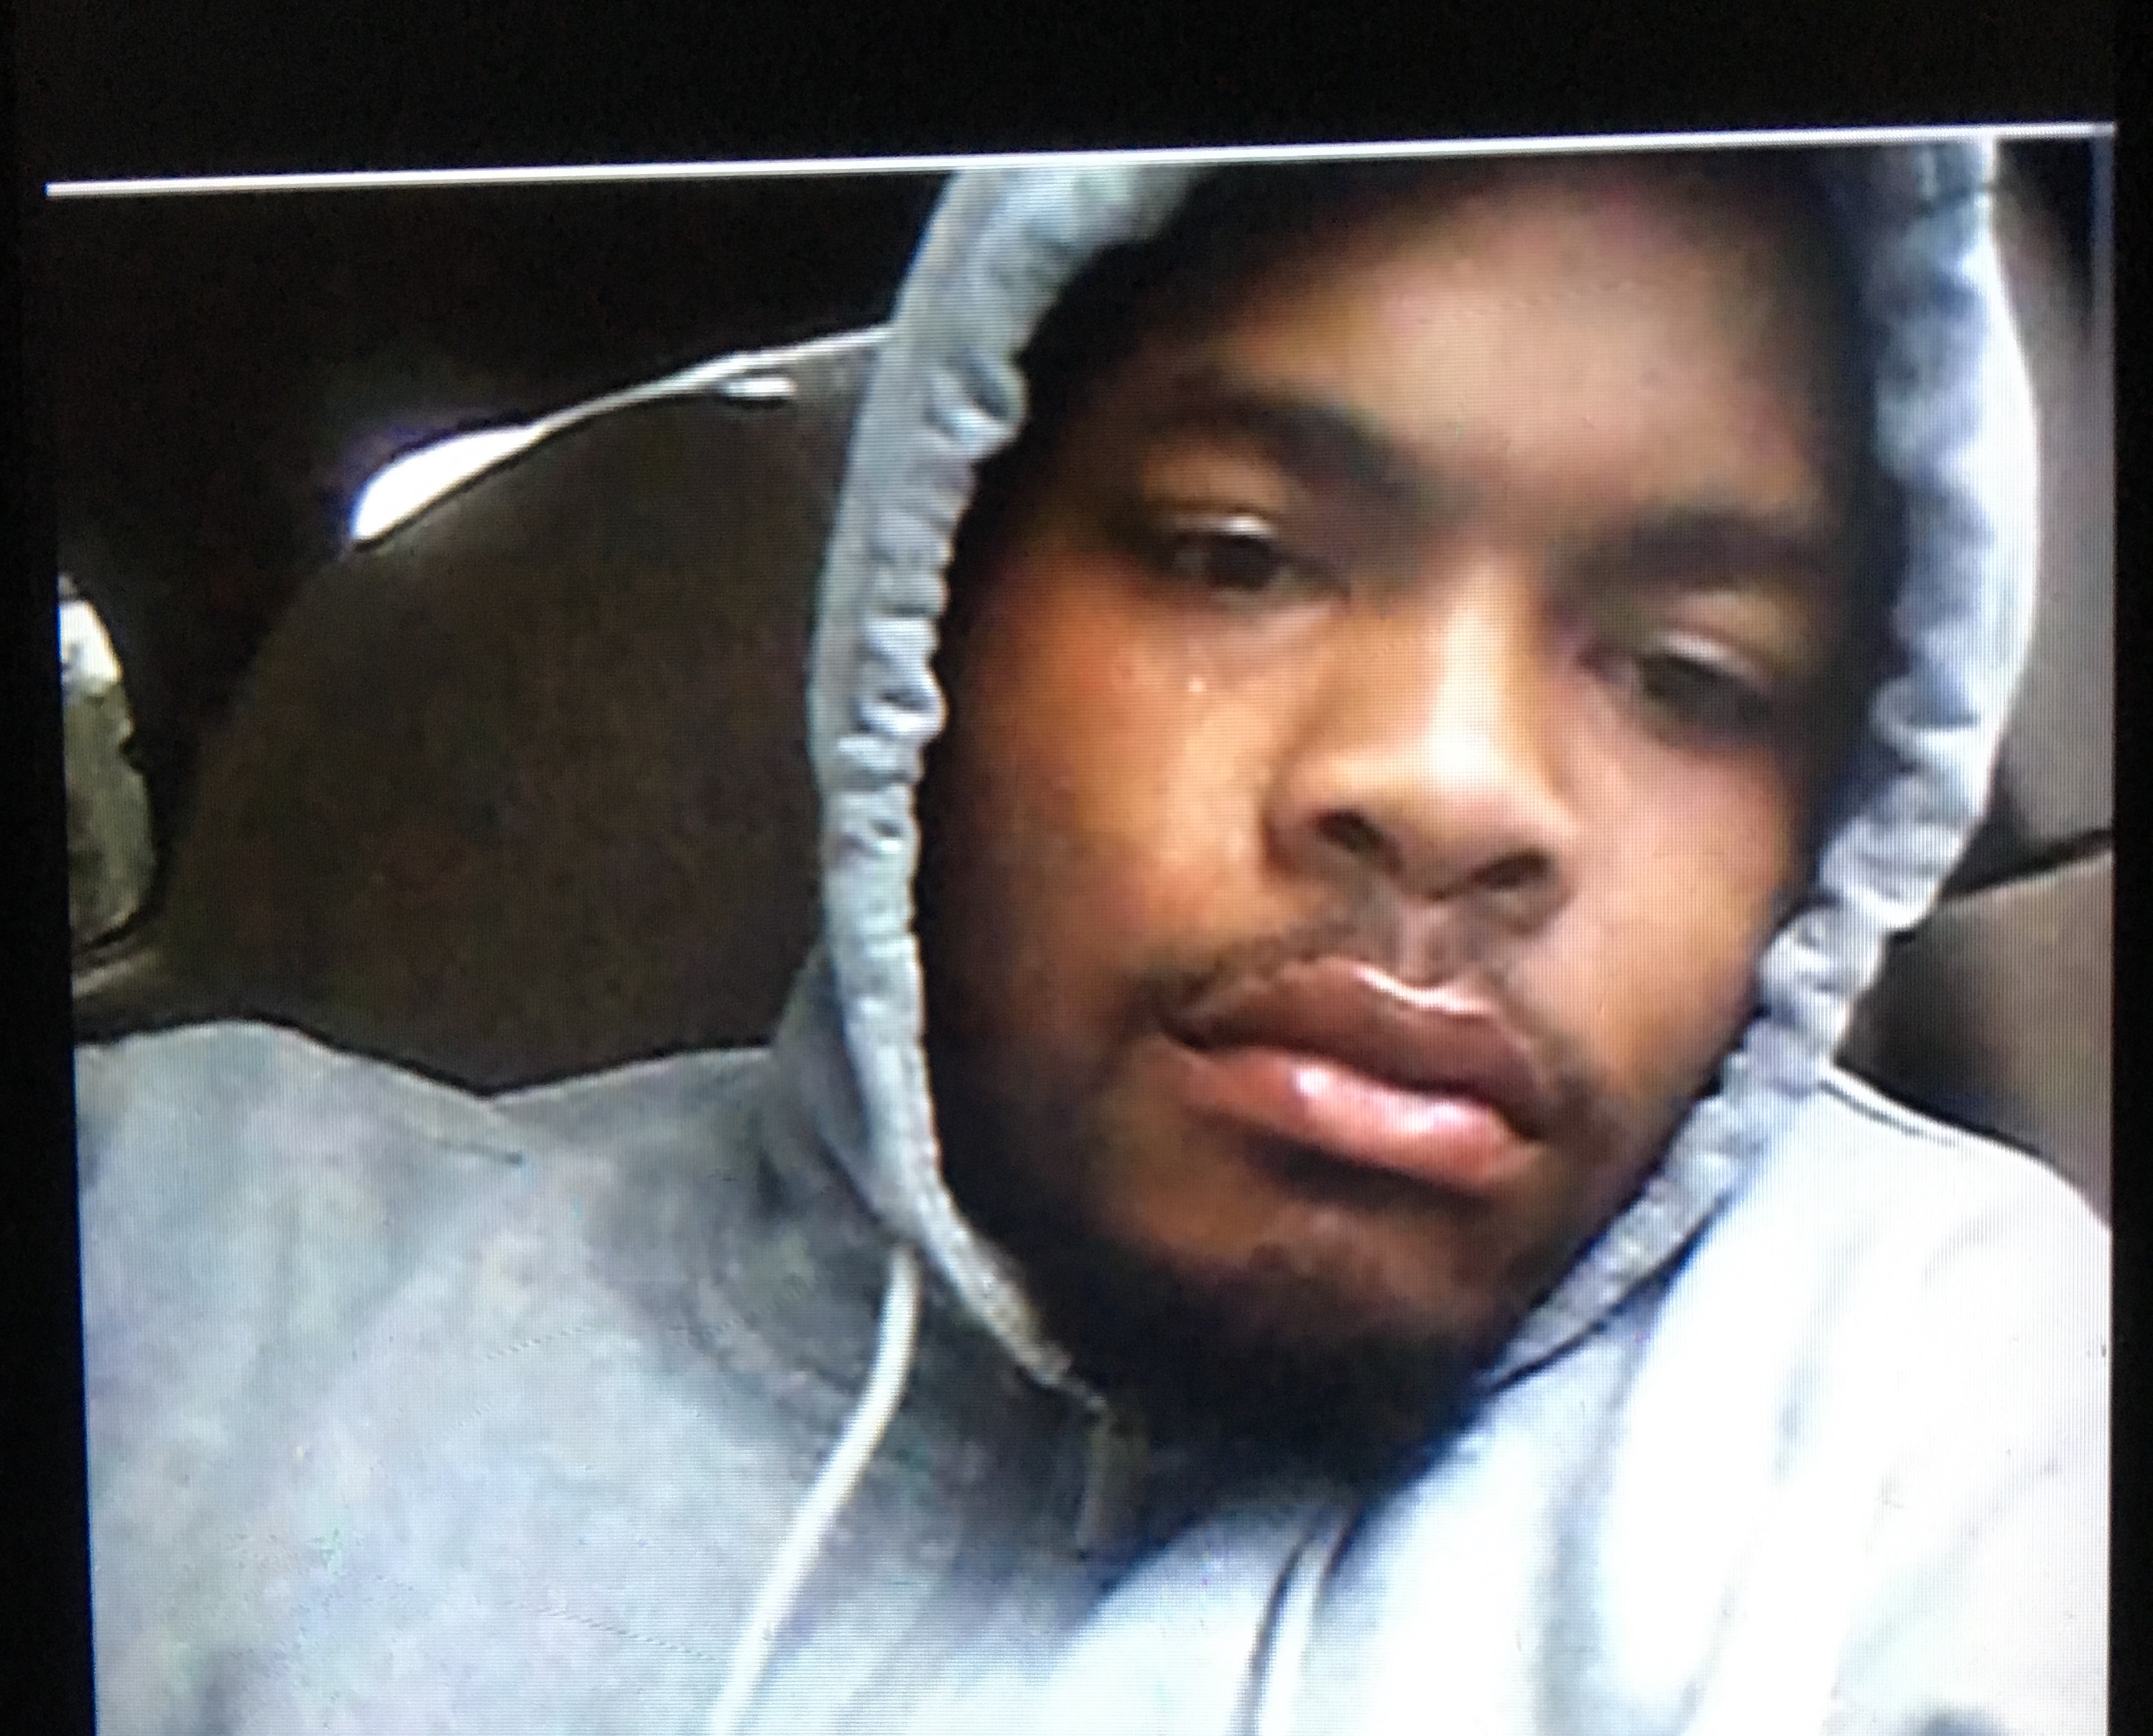 Sharif Derry was shot and killed in Philadelphia in 2015. His mother fears that witness intimidation will affect the case against the men accused of killing him.